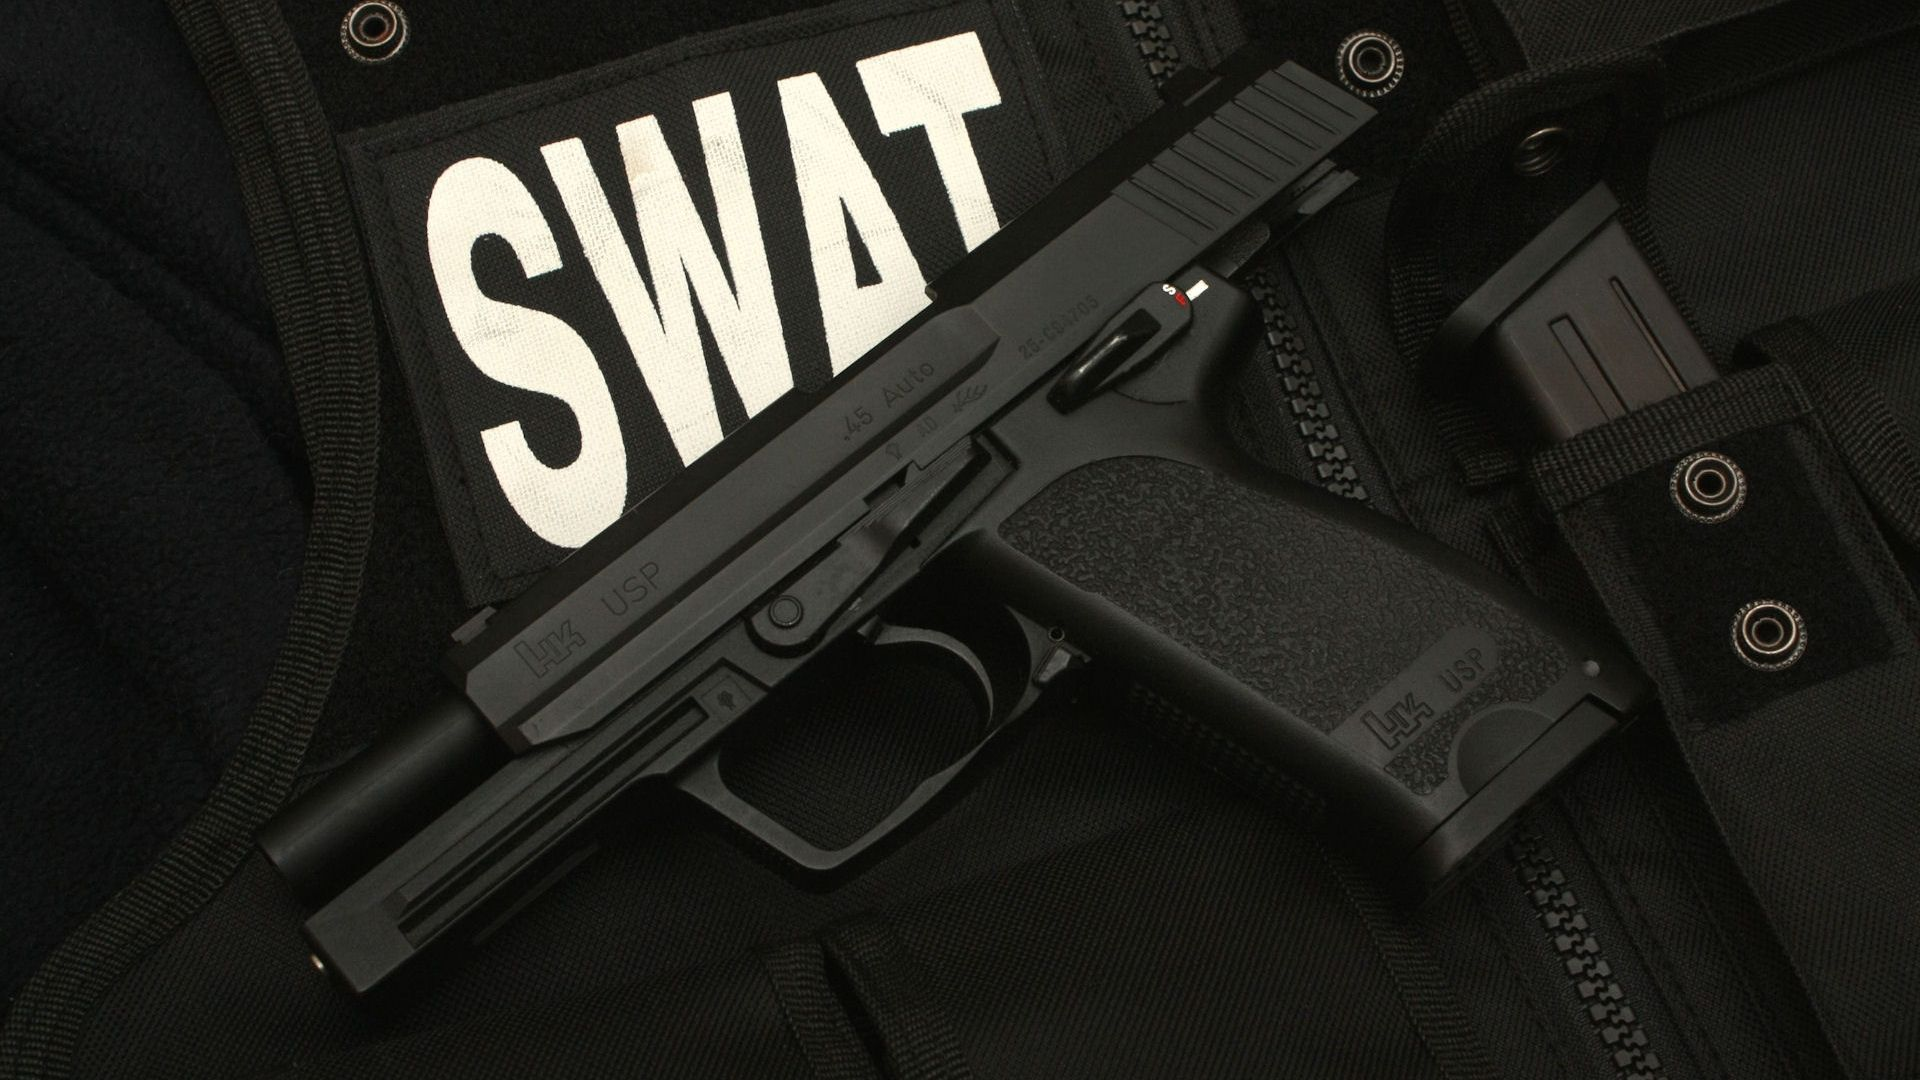 6828176-swat-wallpaper.jpg